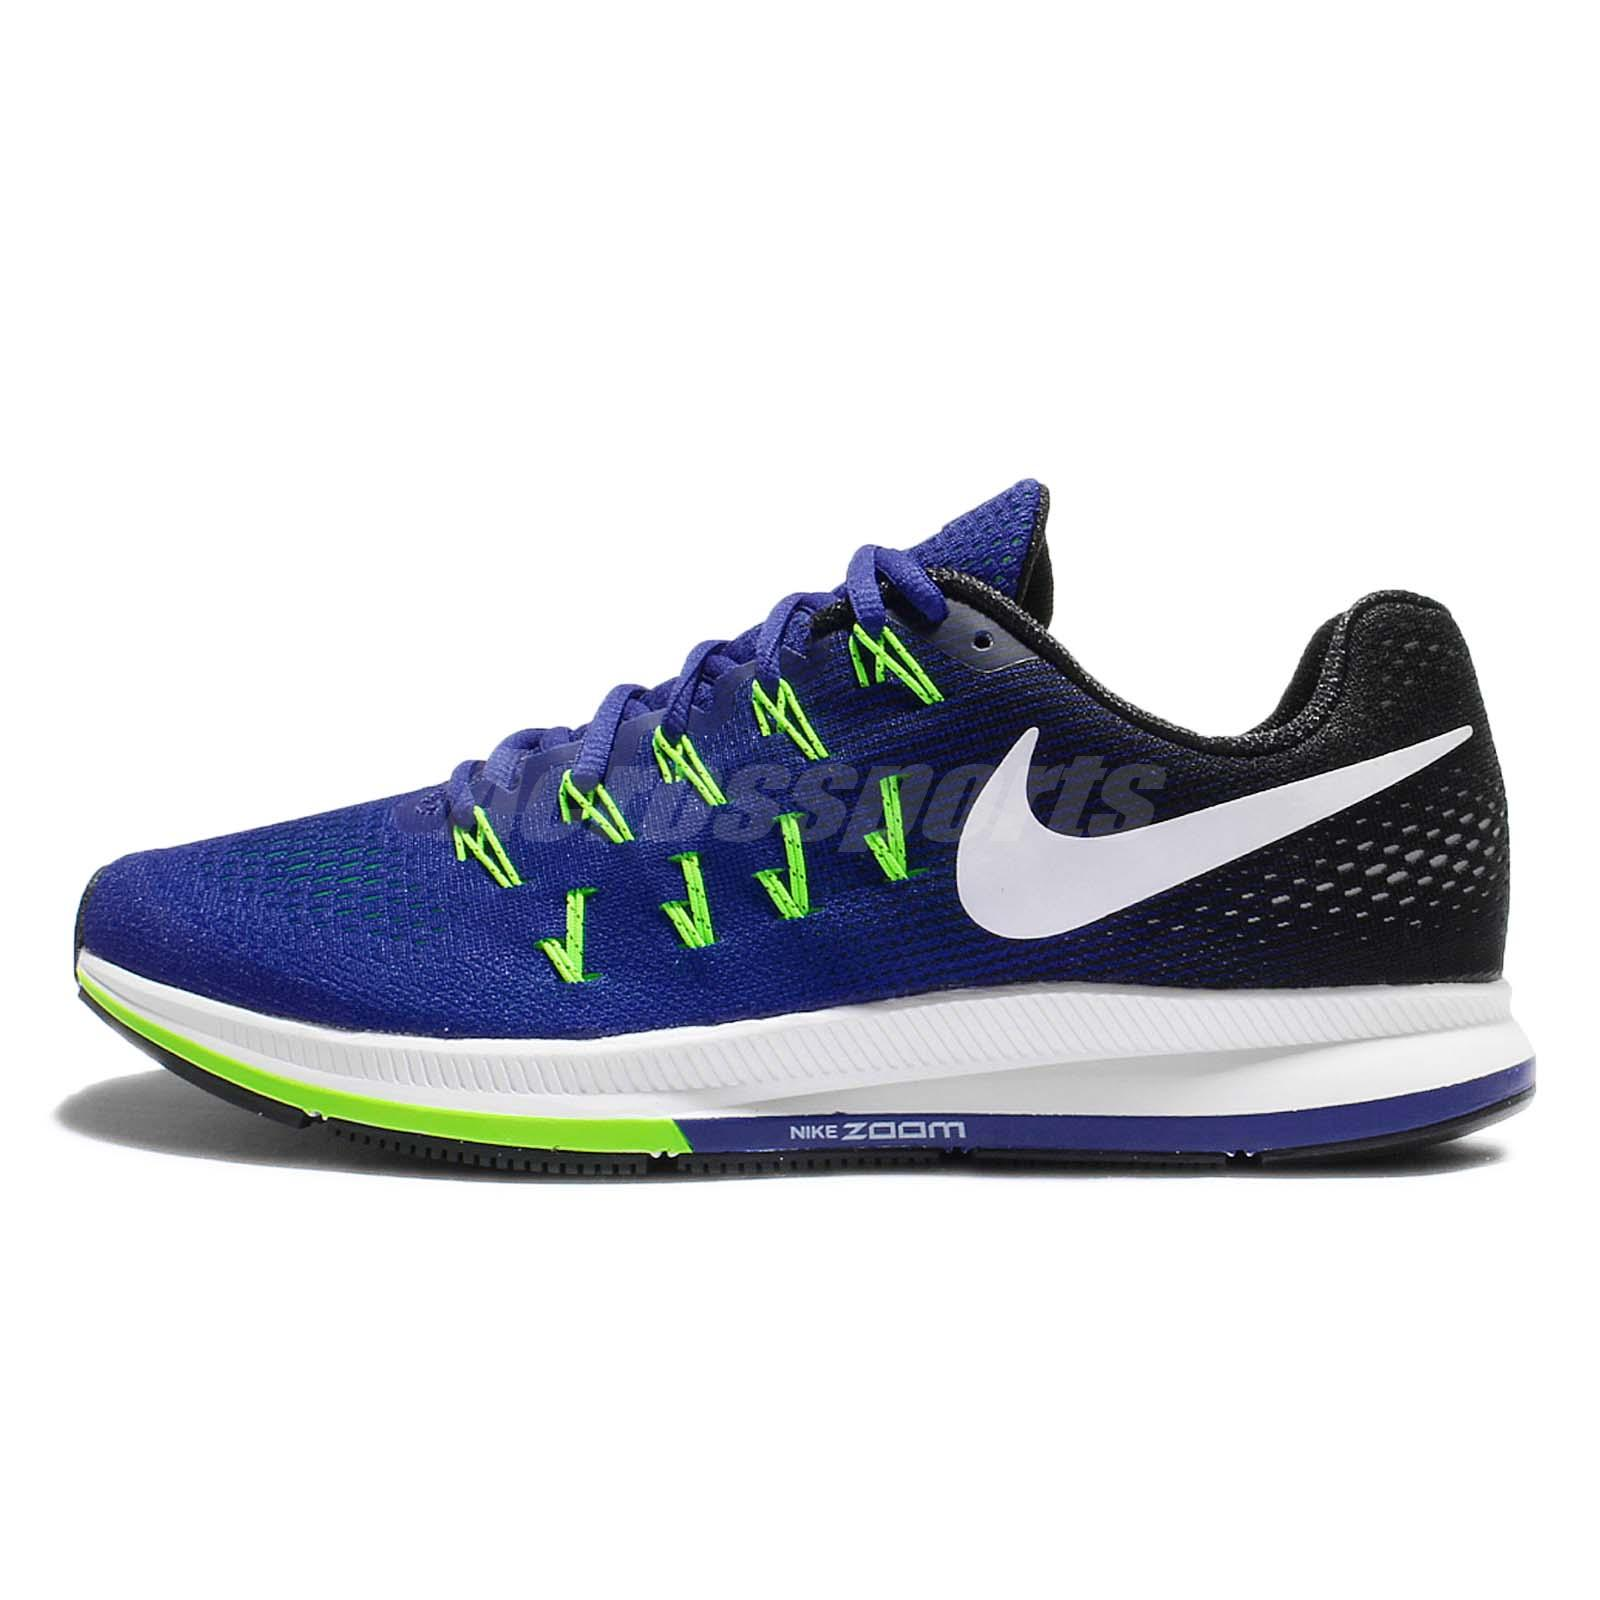 Cheap Nike Pegasus From China  3c25165419